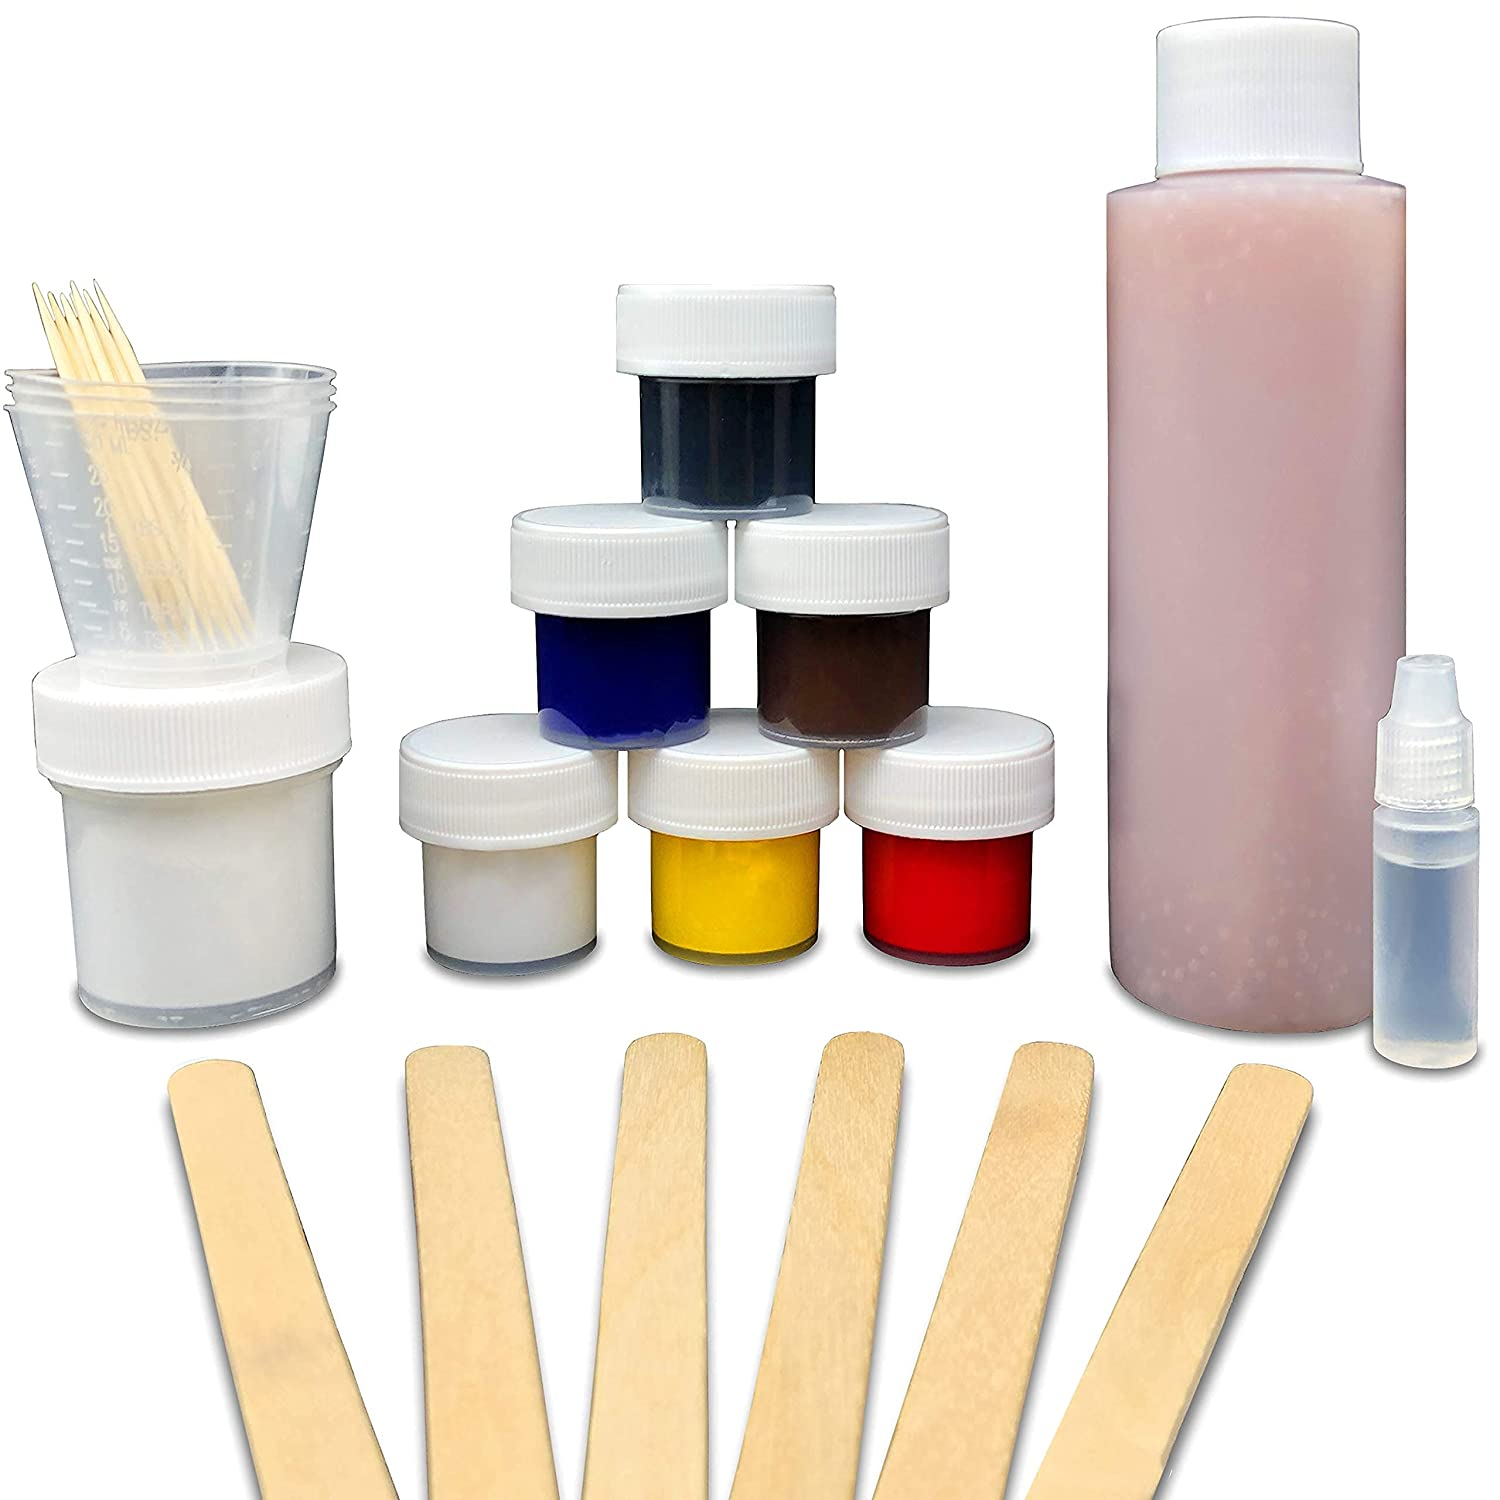 True Composites Premium Gelcoat Max 83% OFF Repair Har Set Kit-Complete with National products